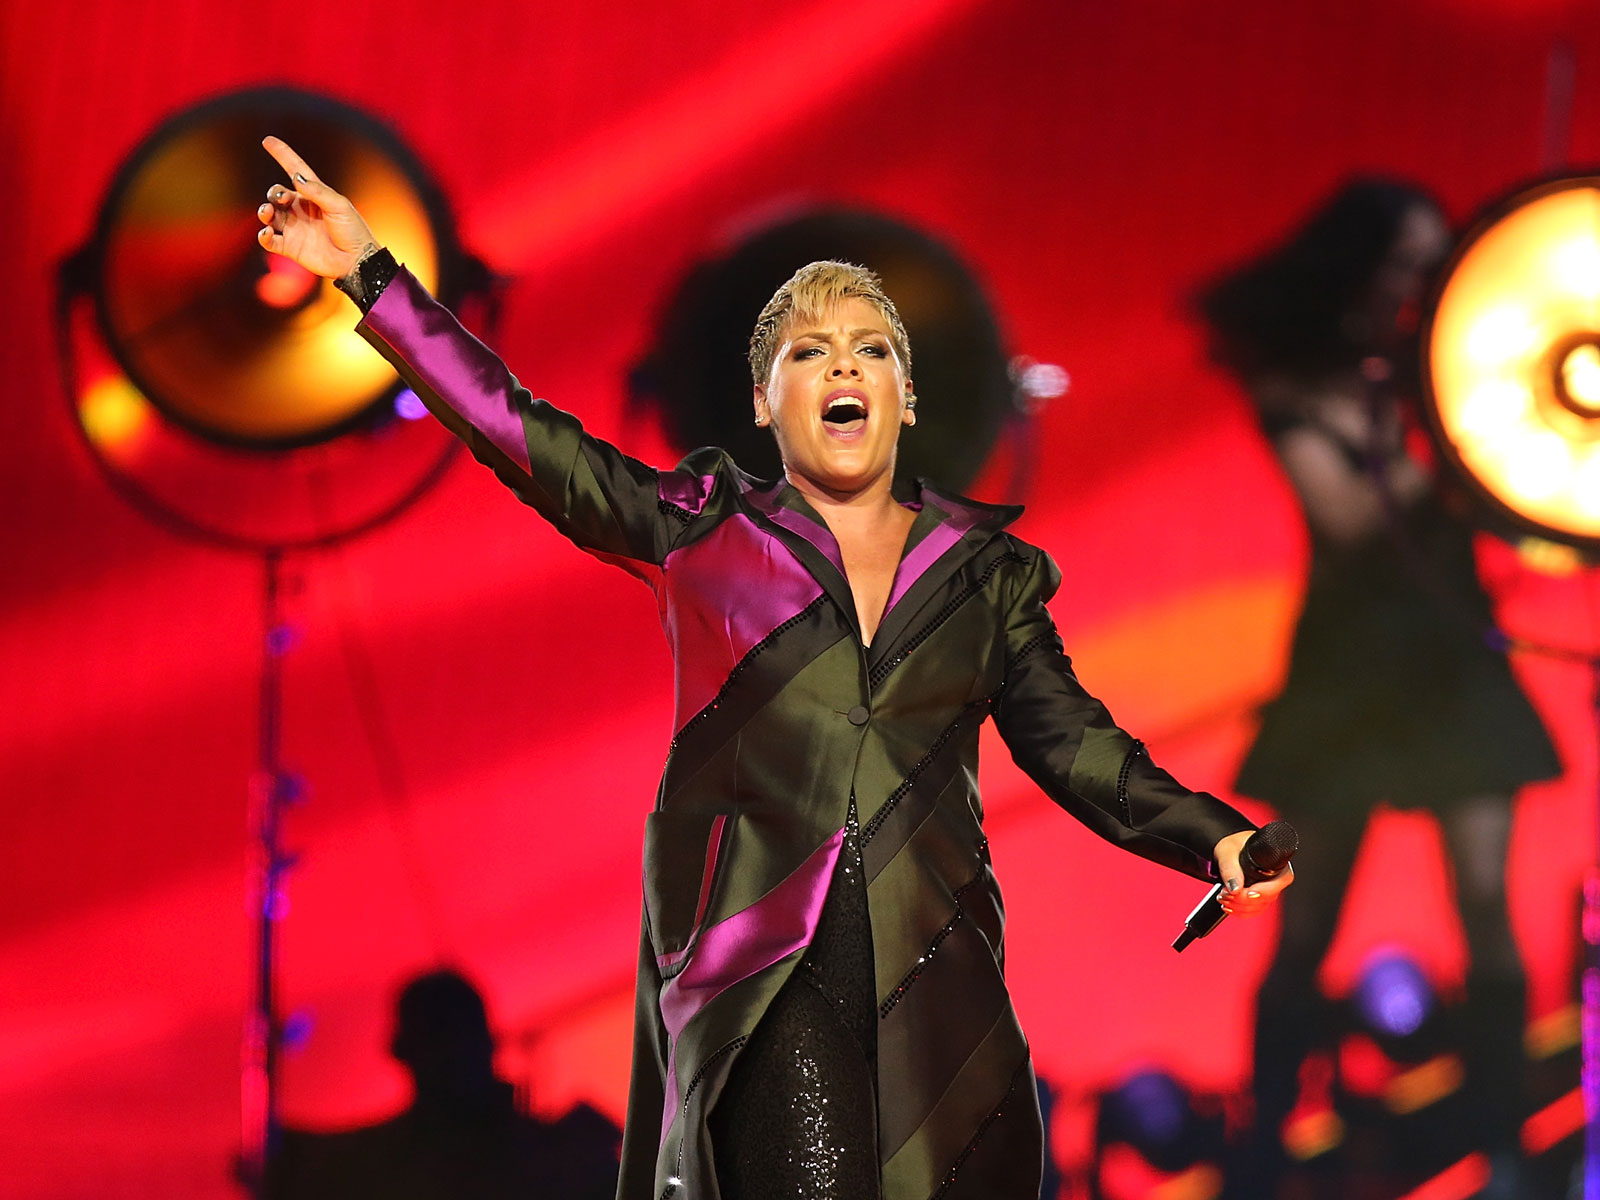 Singer Pink Sold Out Her First Batch of Wine in One Day